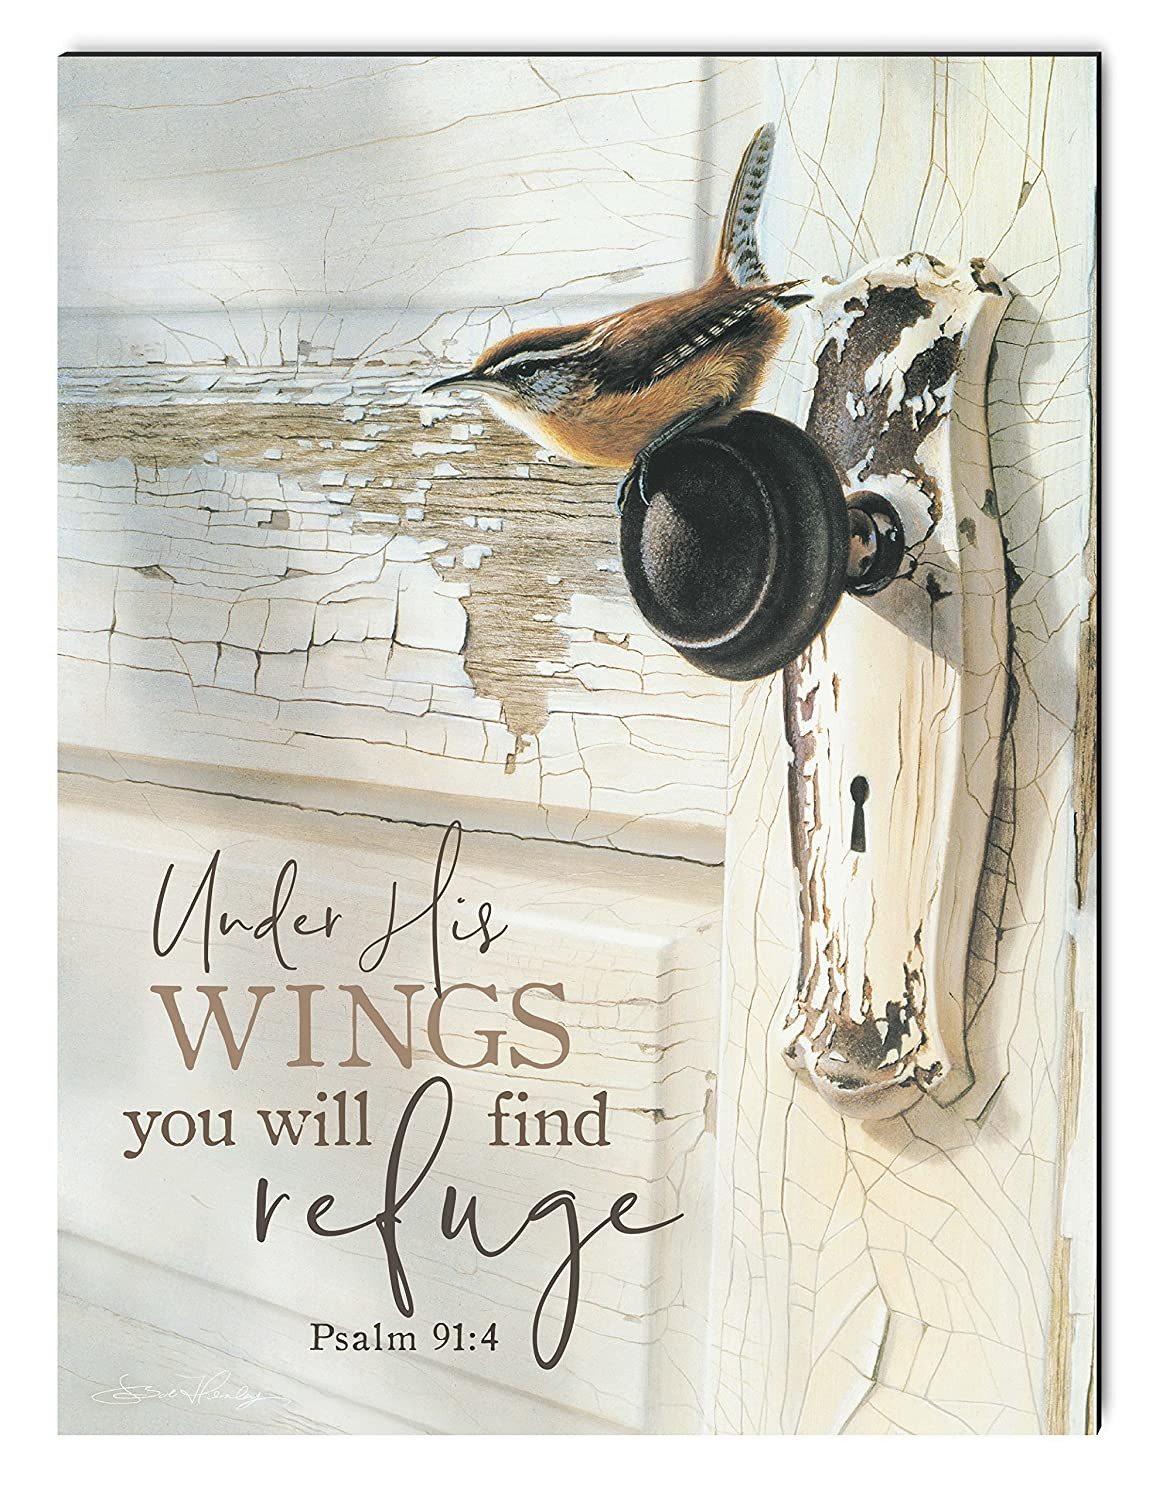 P GRAHAM DUNN Under His Wings Find Refuge Bird on Door 12 x 16 Inch Wood Printed Decorative Wall Plaque Sign